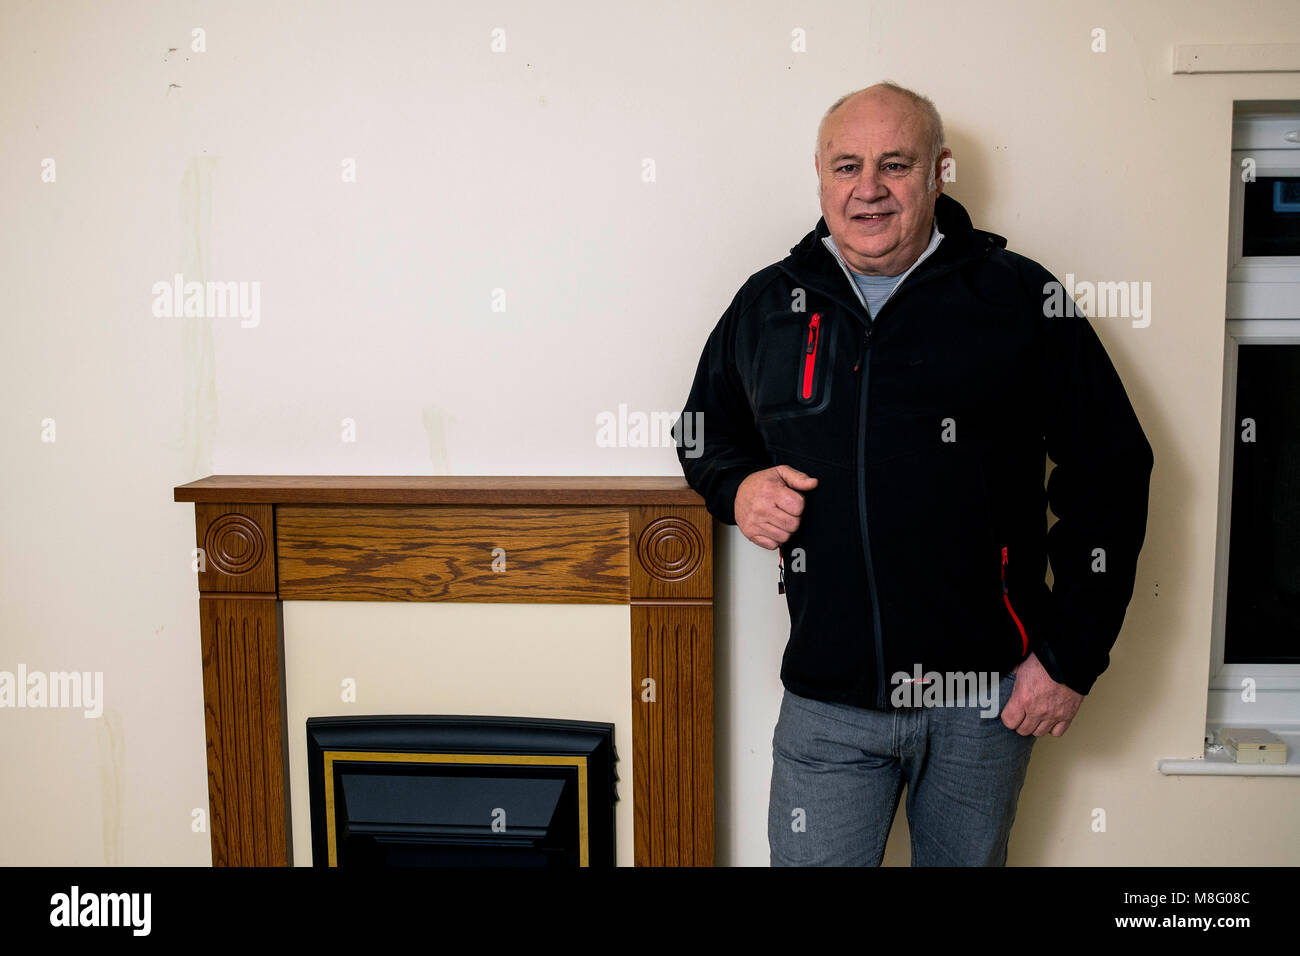 1980 Iranian Embassy Siege SAS veteran Bob Curry enjoys his first cup of tea in his new home. - Stock Image